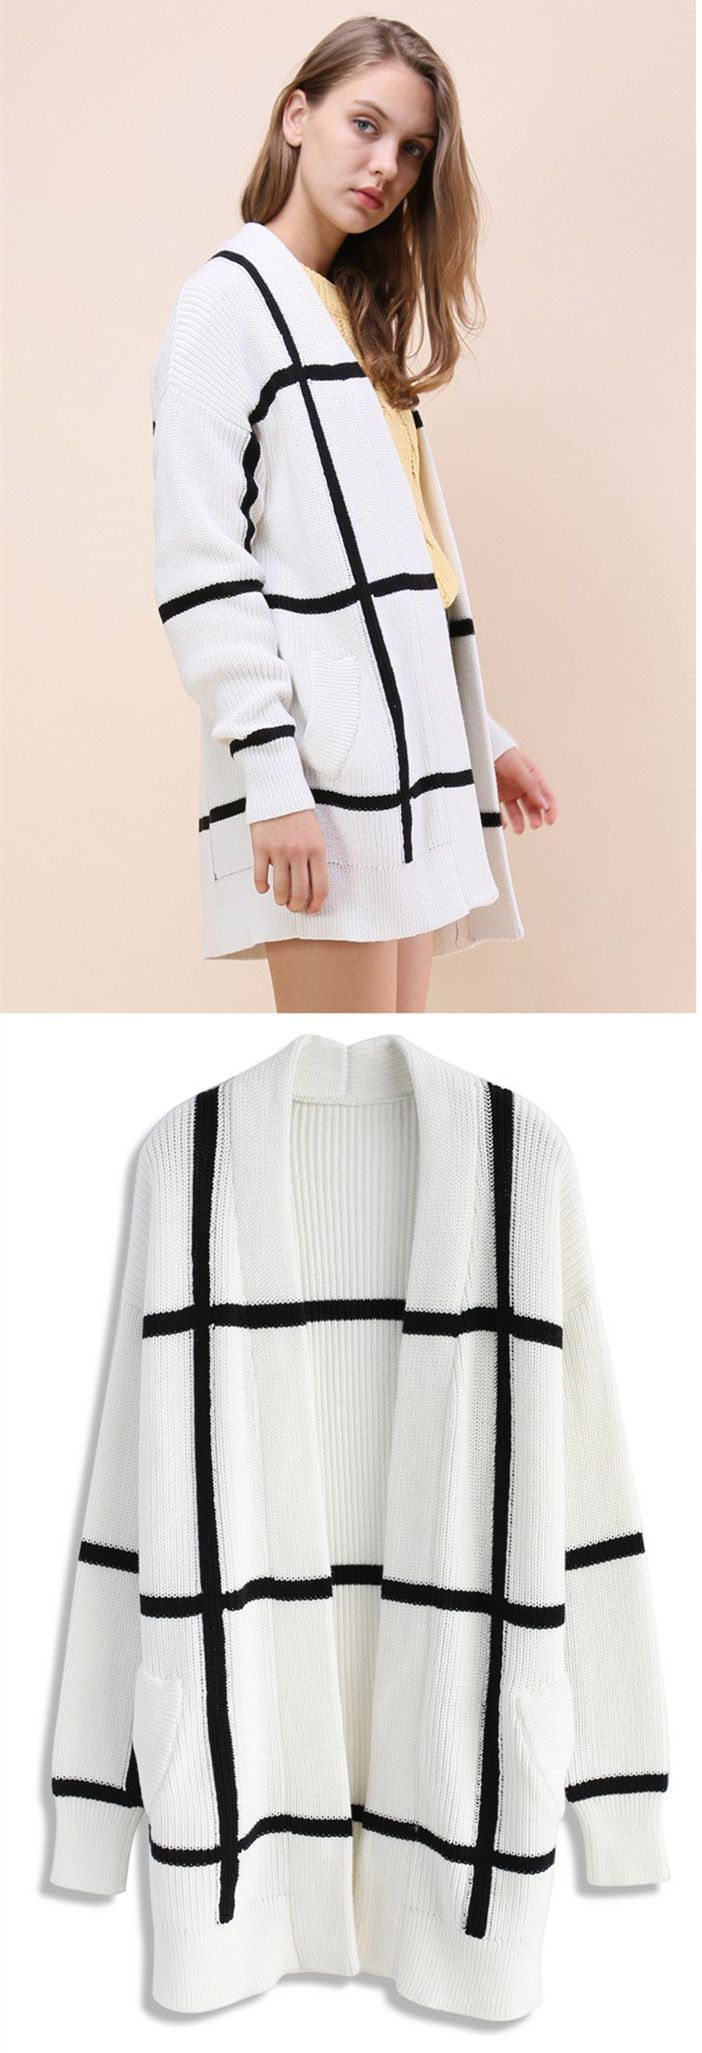 Extra 20% off Storewide  Code: THX20  Ends Nov.10th    Modern Grid Knitted Longline Cardigan in White  Find more cute cardigan at Chicwish.com